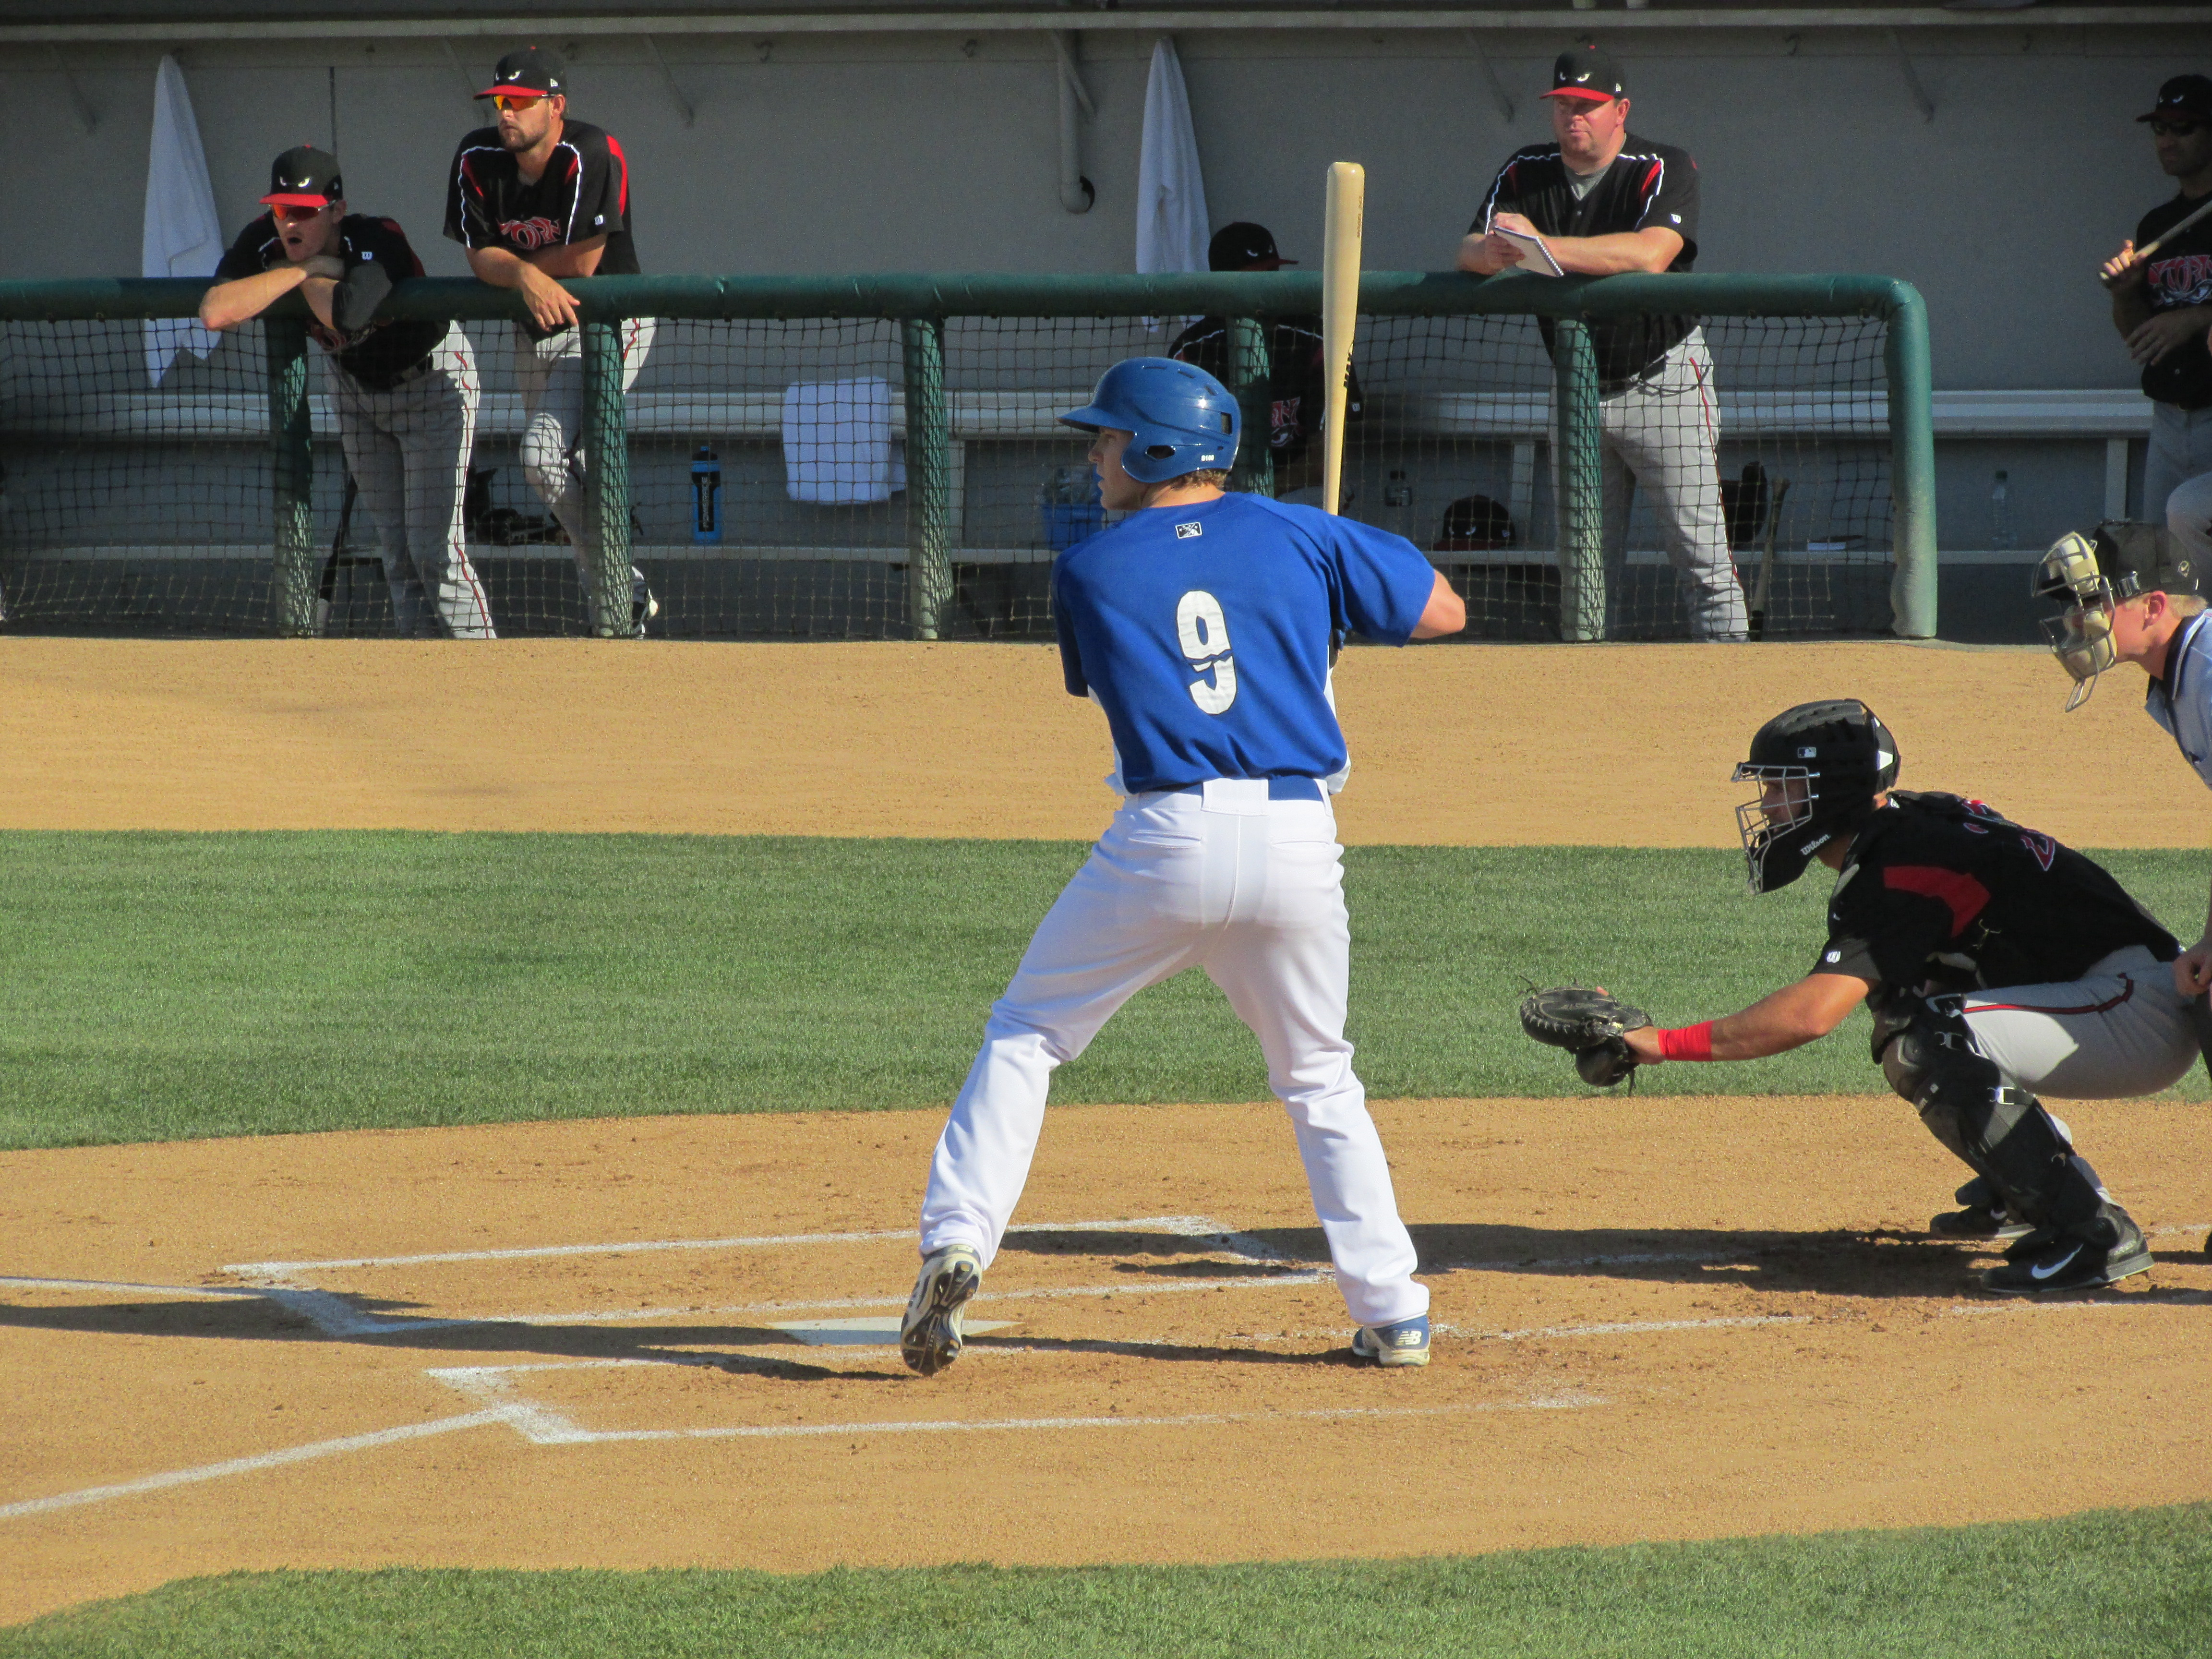 Brandon Dixon, seen here with Class-A Rancho Cucamonga in 2015, hit .500 (5-for-10) with a home run this week in the Arizona Fall League.